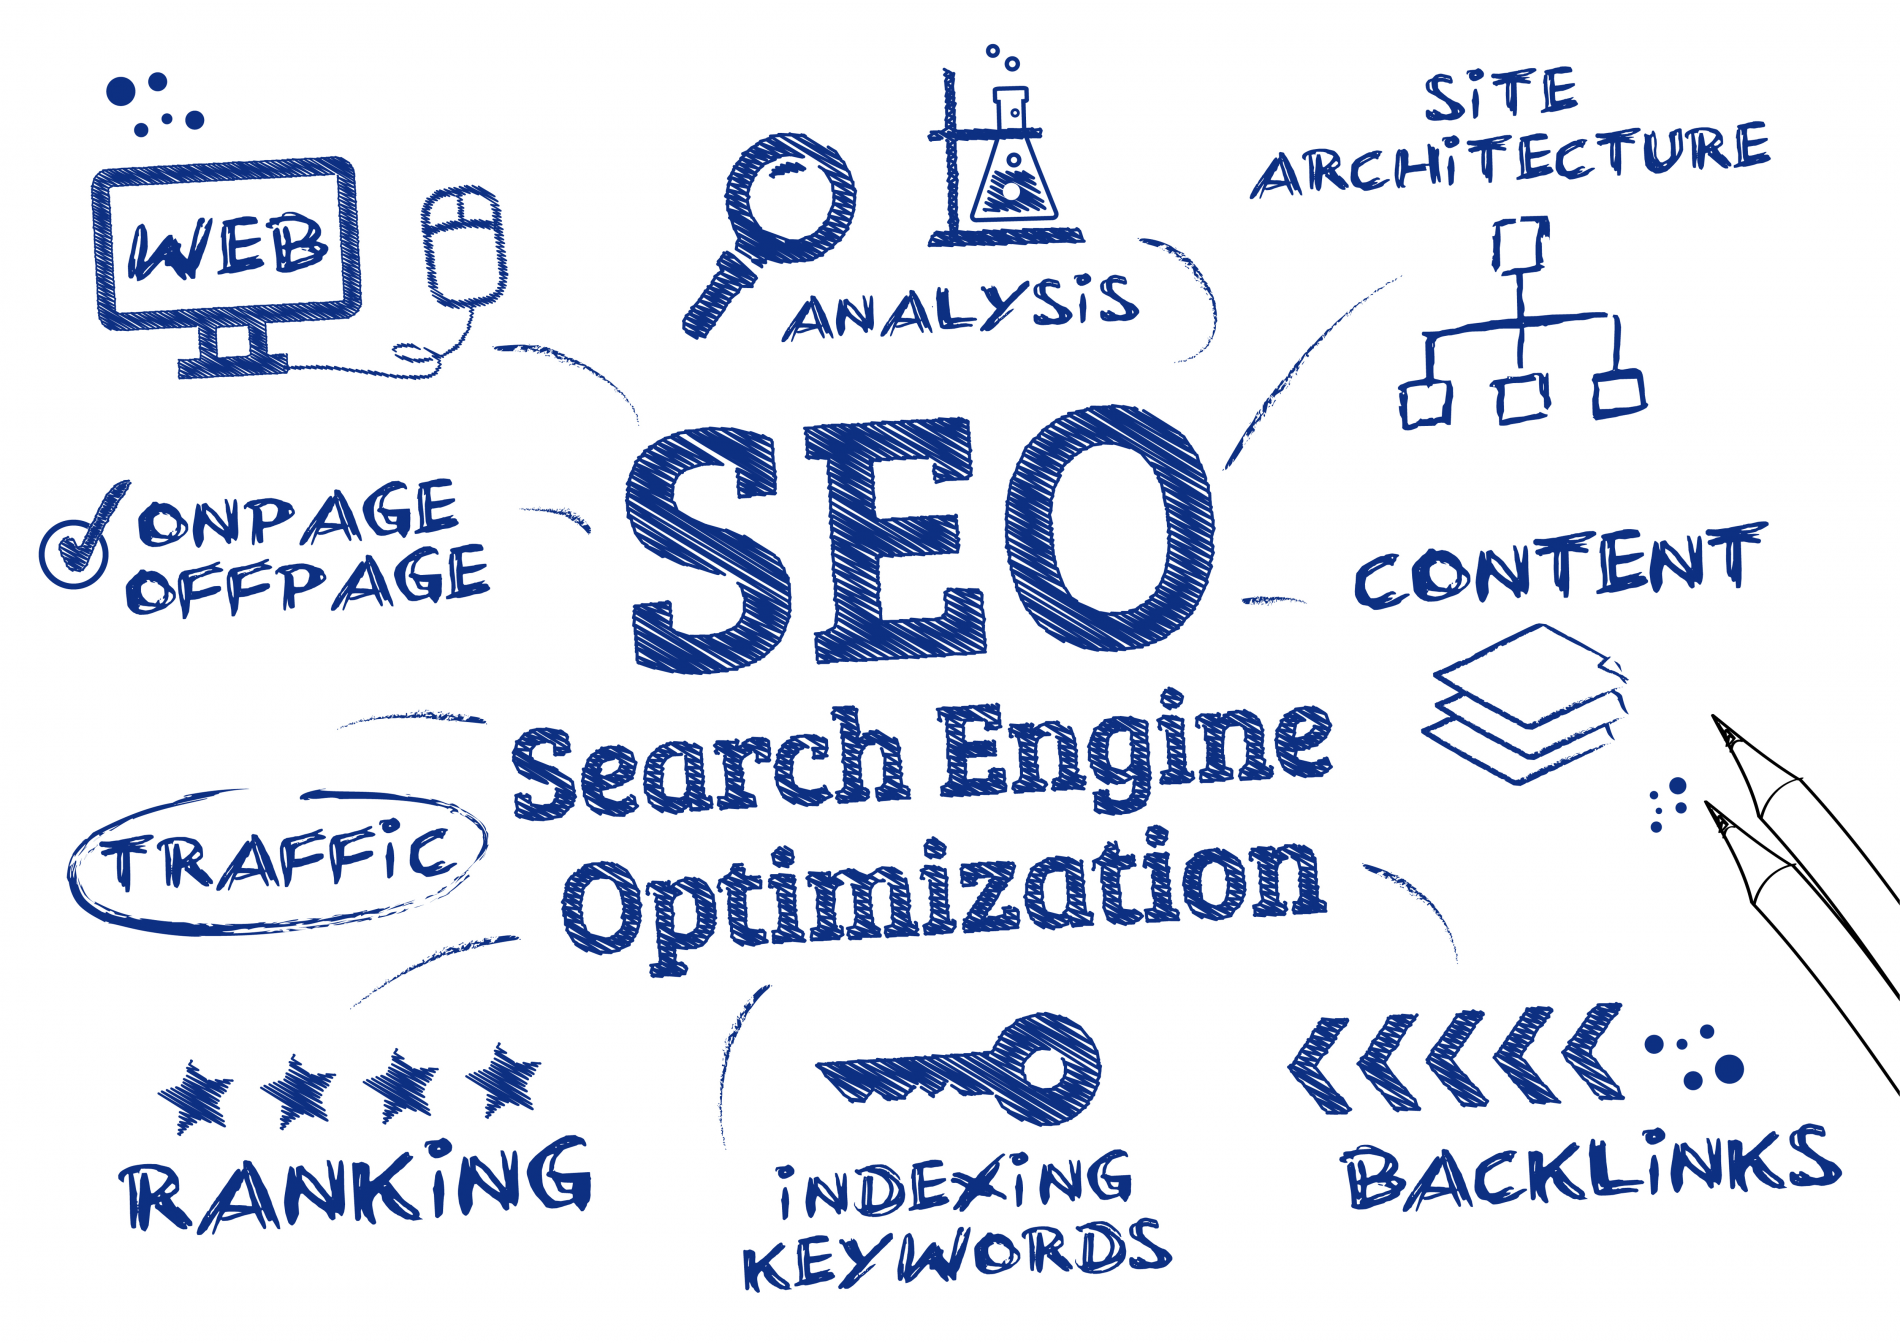 SEO & ITS IMMENSE UTILITY VALUE